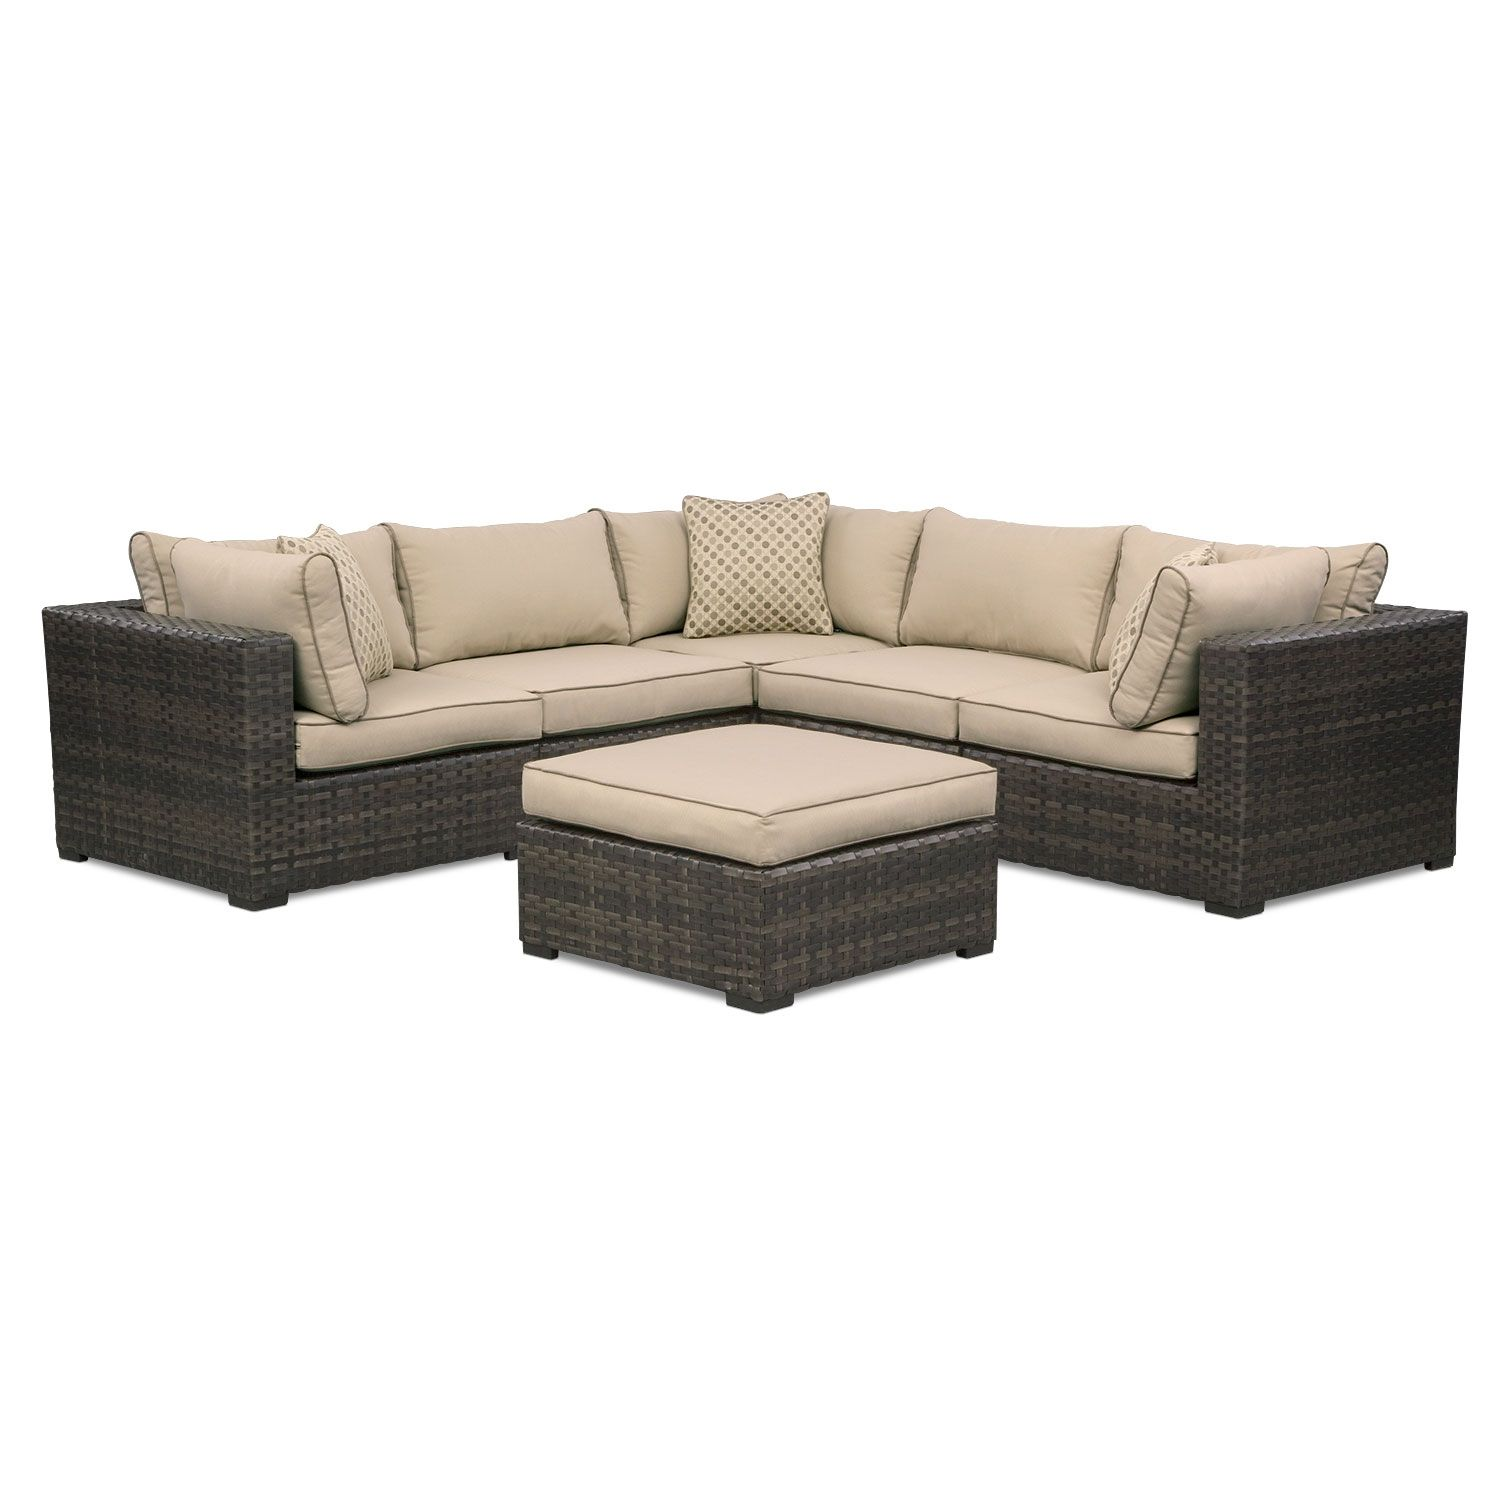 Out new patio line is sleek and of the best quality shop now outdoor furniture regatta 5 pc sectional and ottoman